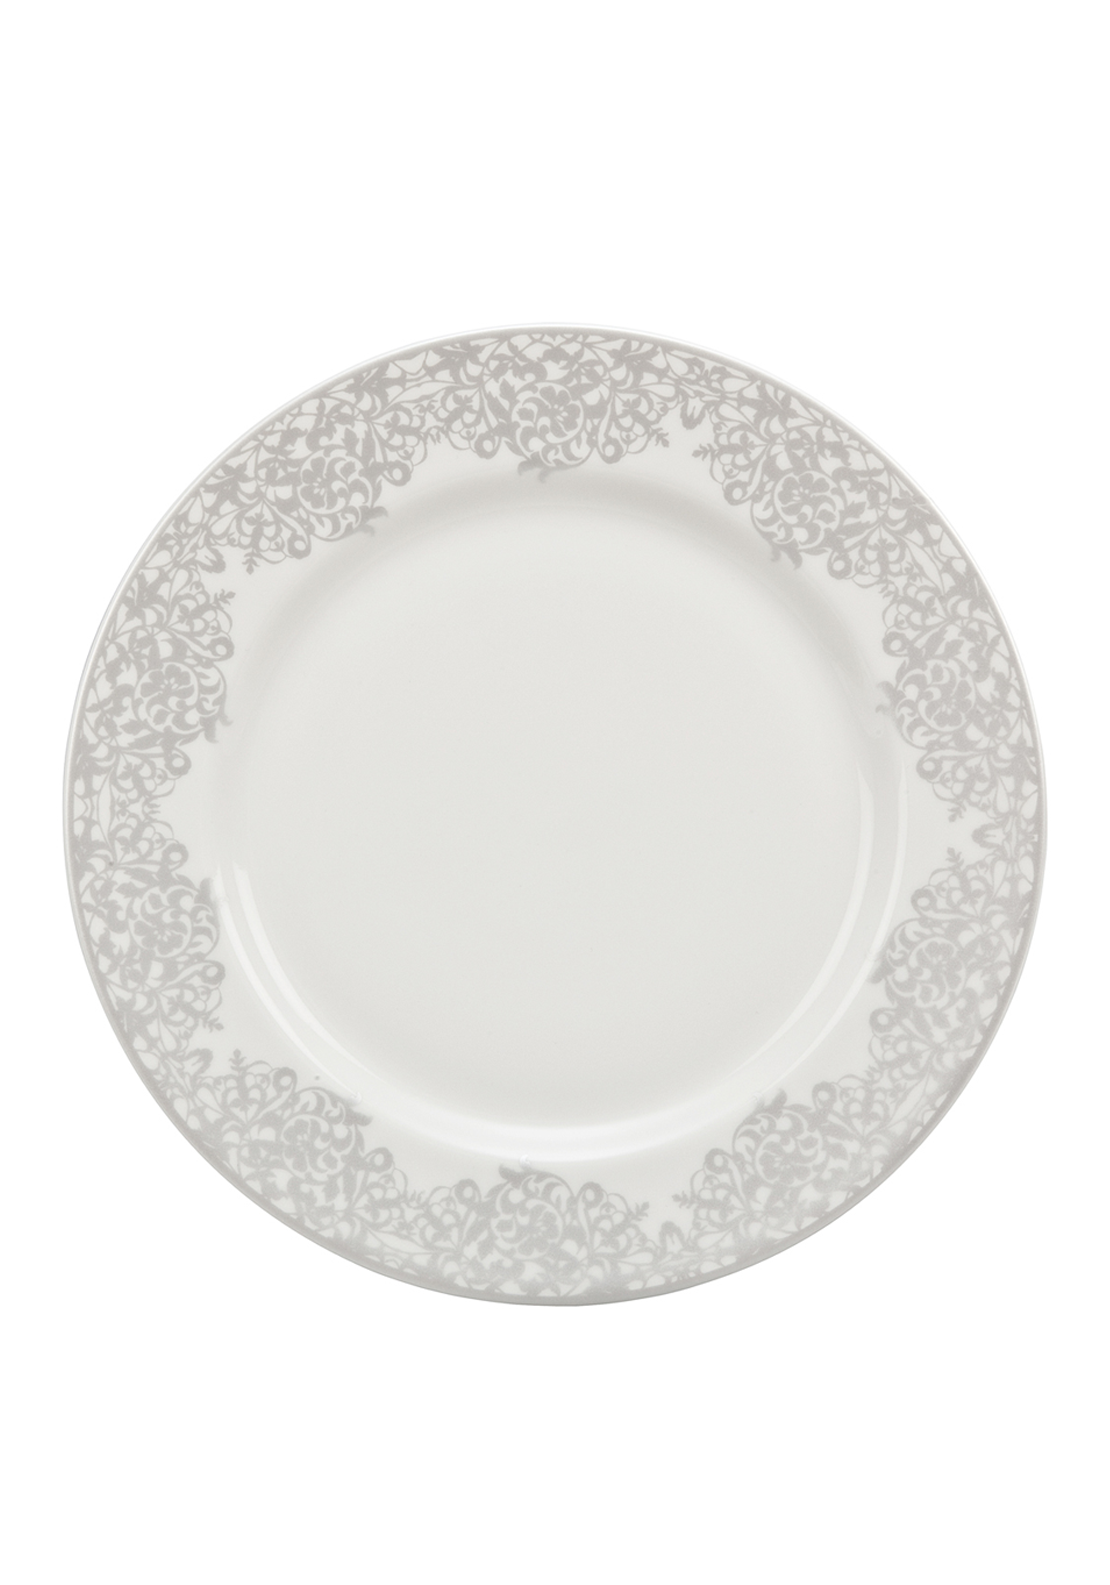 Denby Monsoon Filigree Salad Plate, Silver